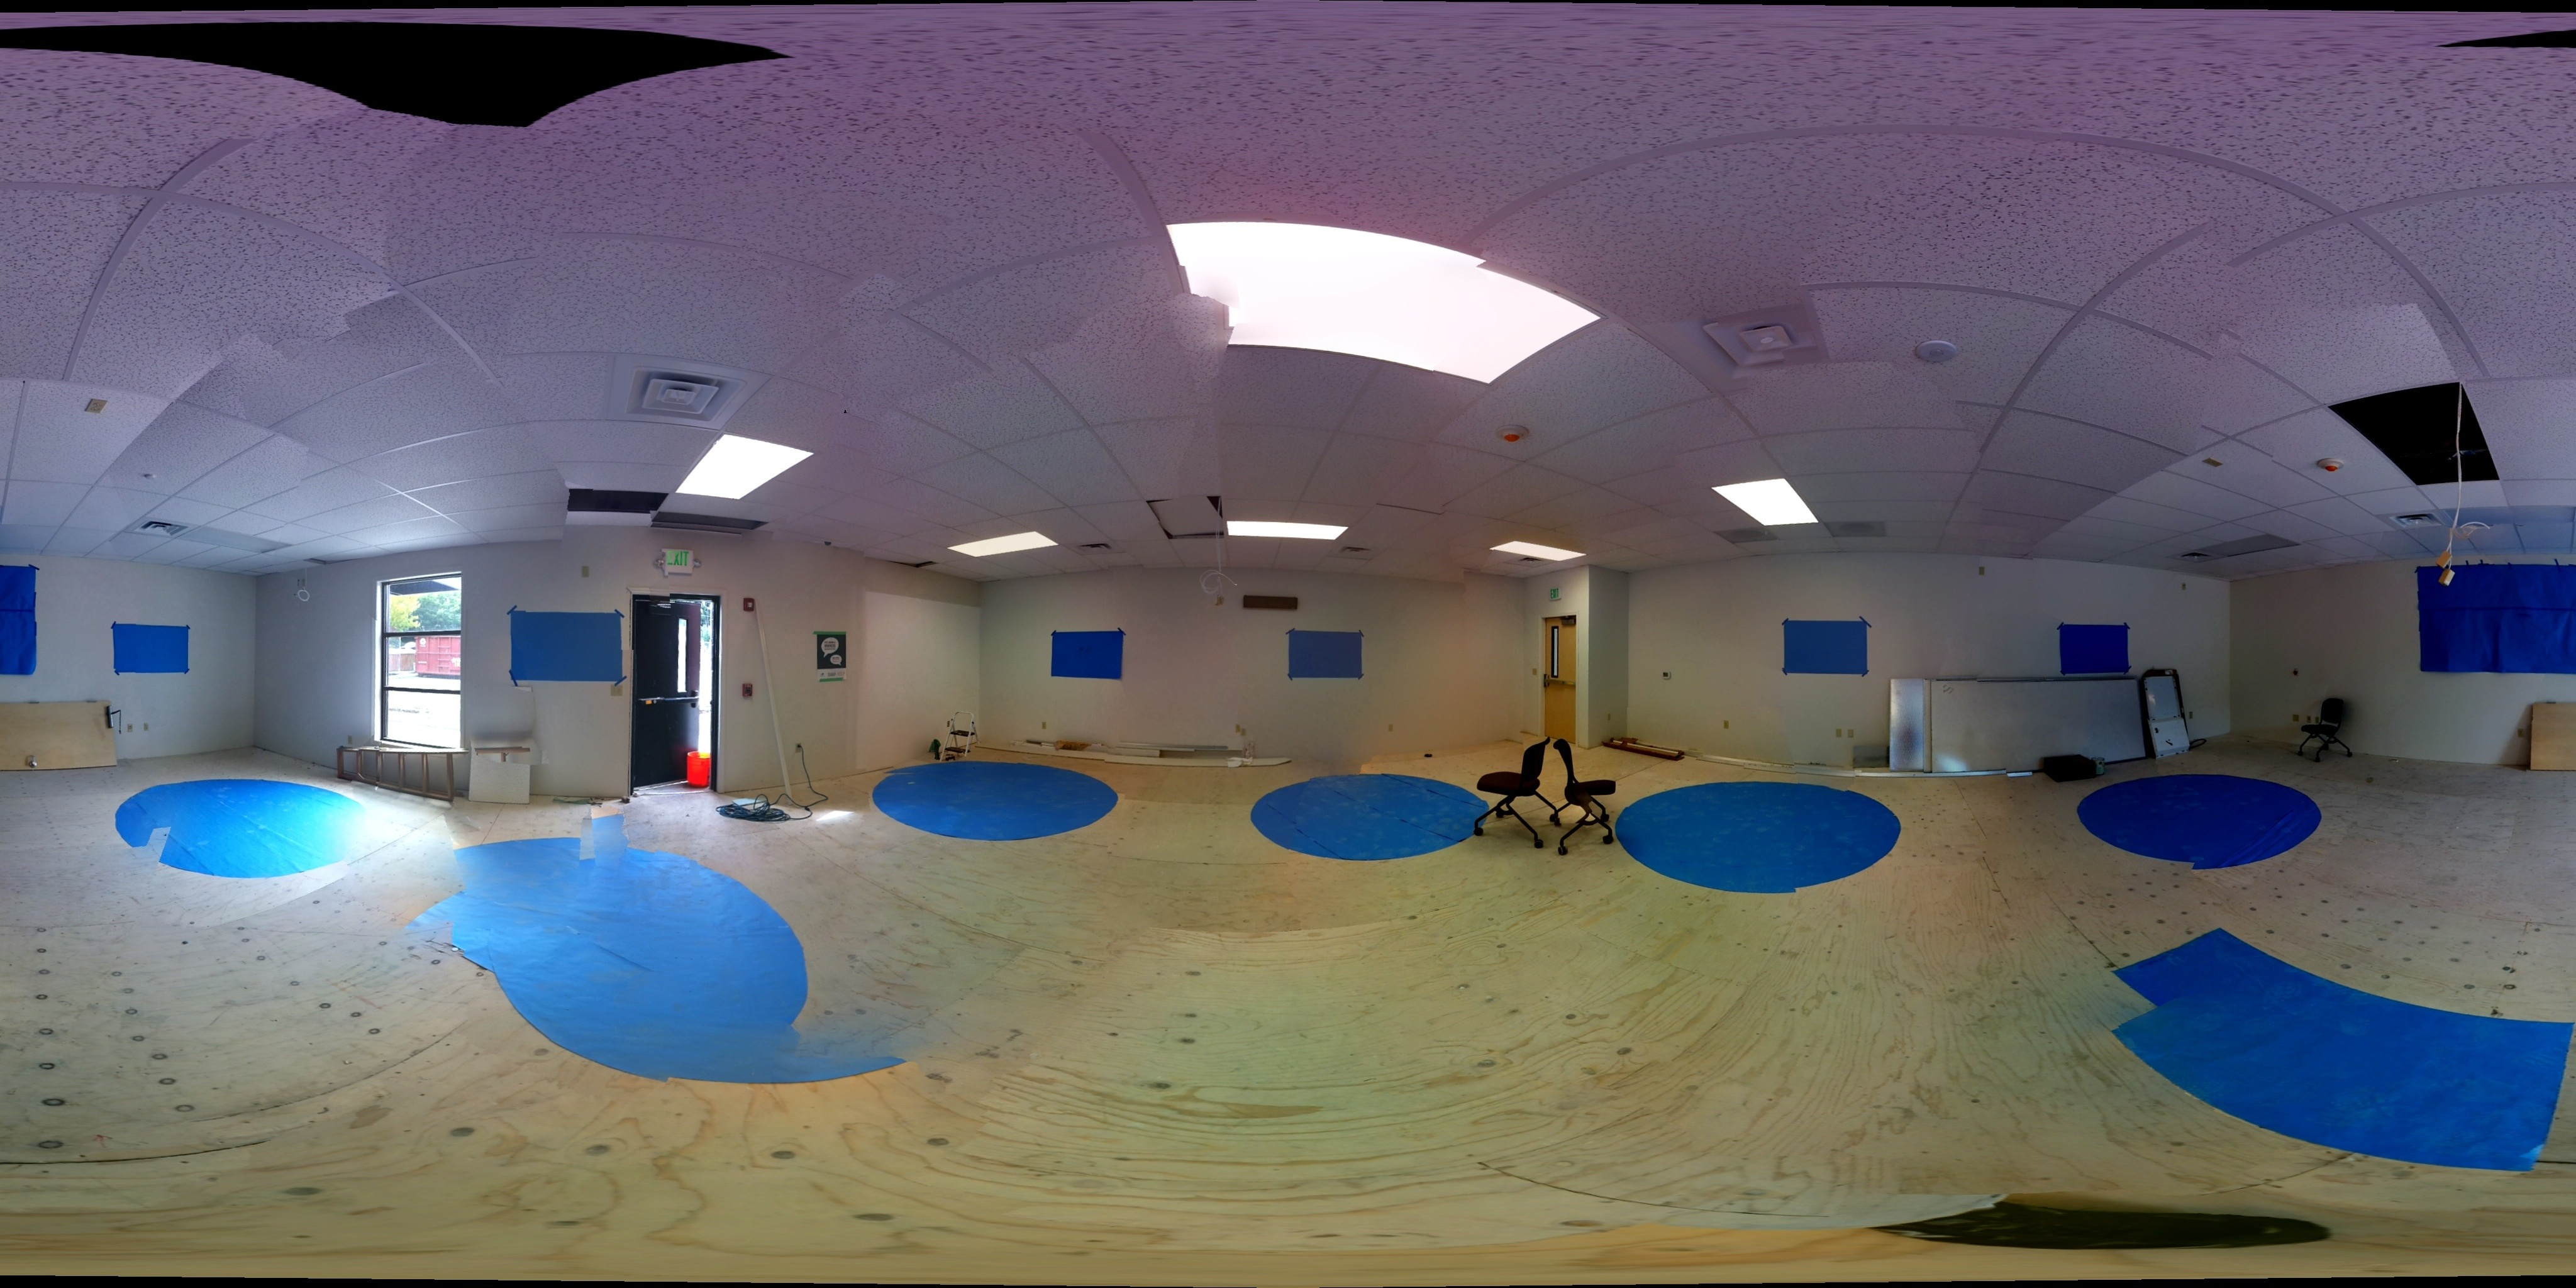 Click on the images to see a 360 panoramic view of the classroom